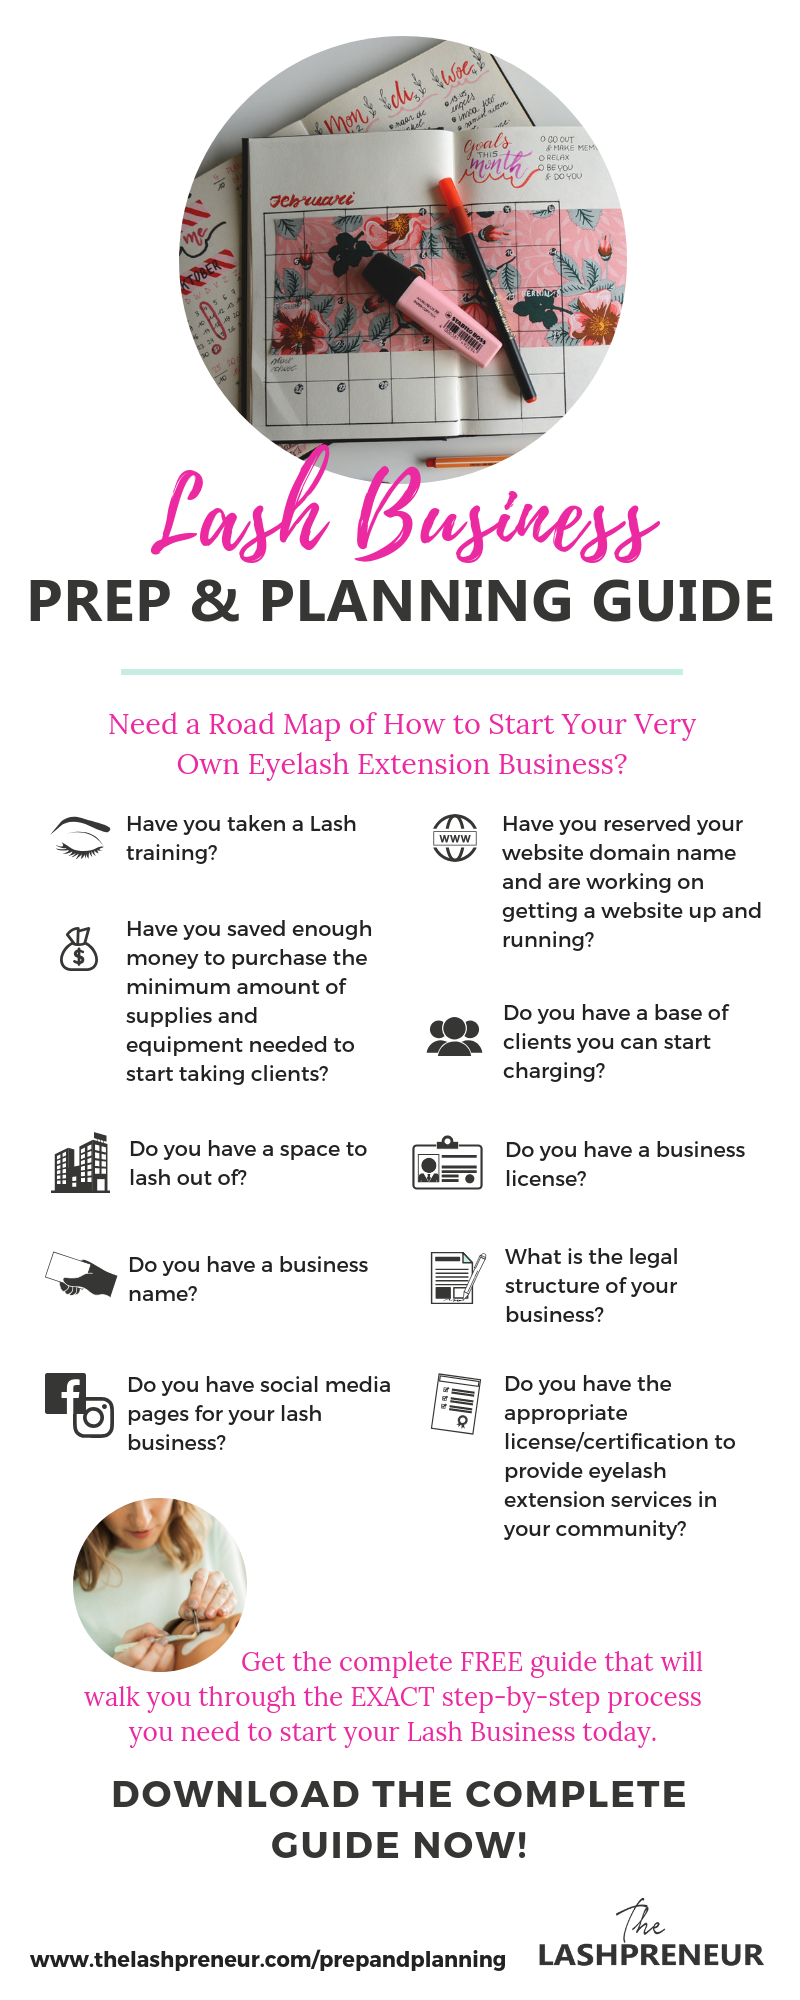 dcea81df110 Need a road map of how to start your very own eyelash extension business ?Download